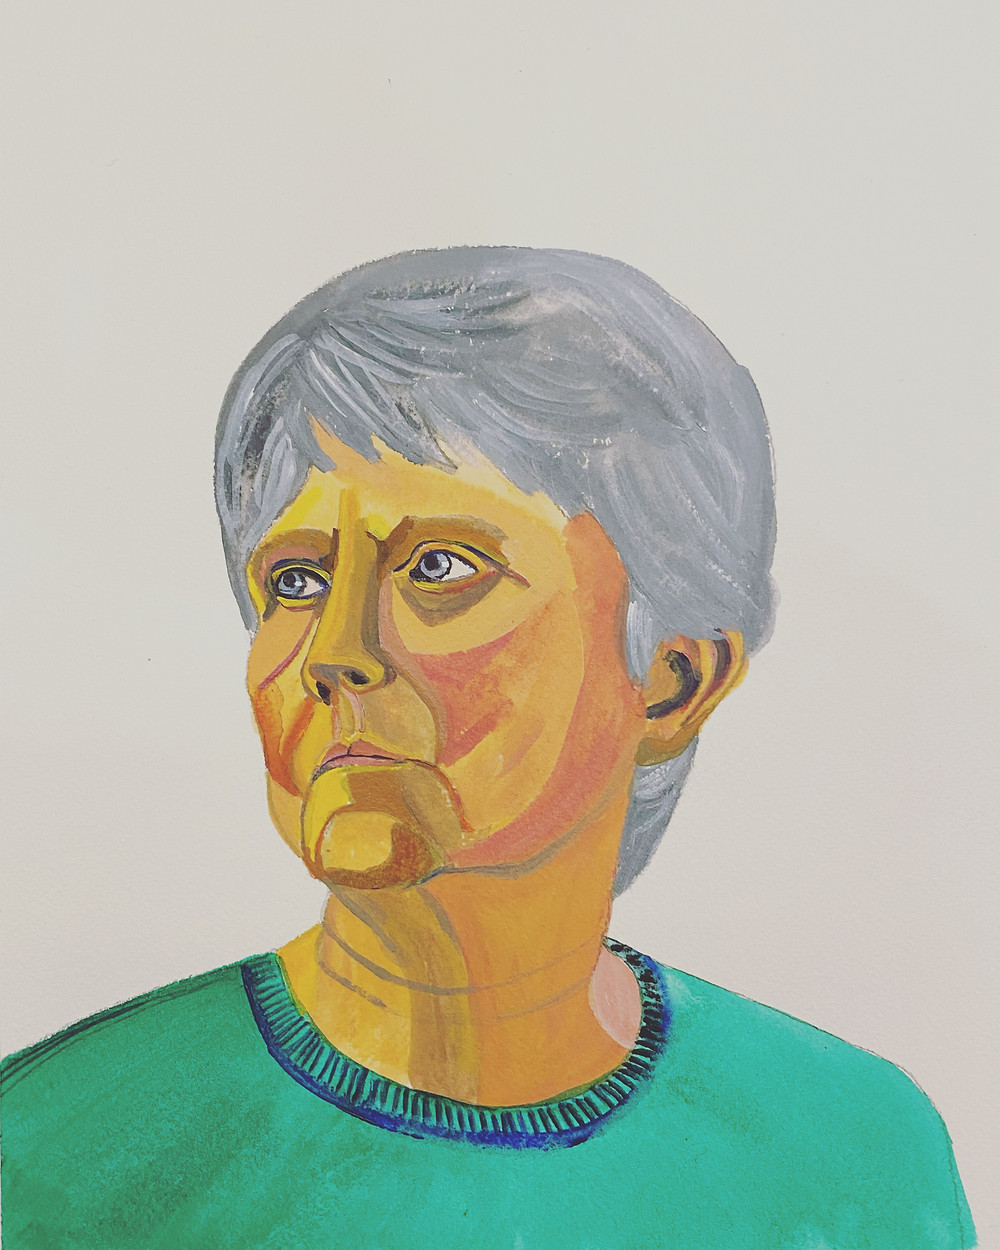 Painting of a women with gray hair and a green sweater